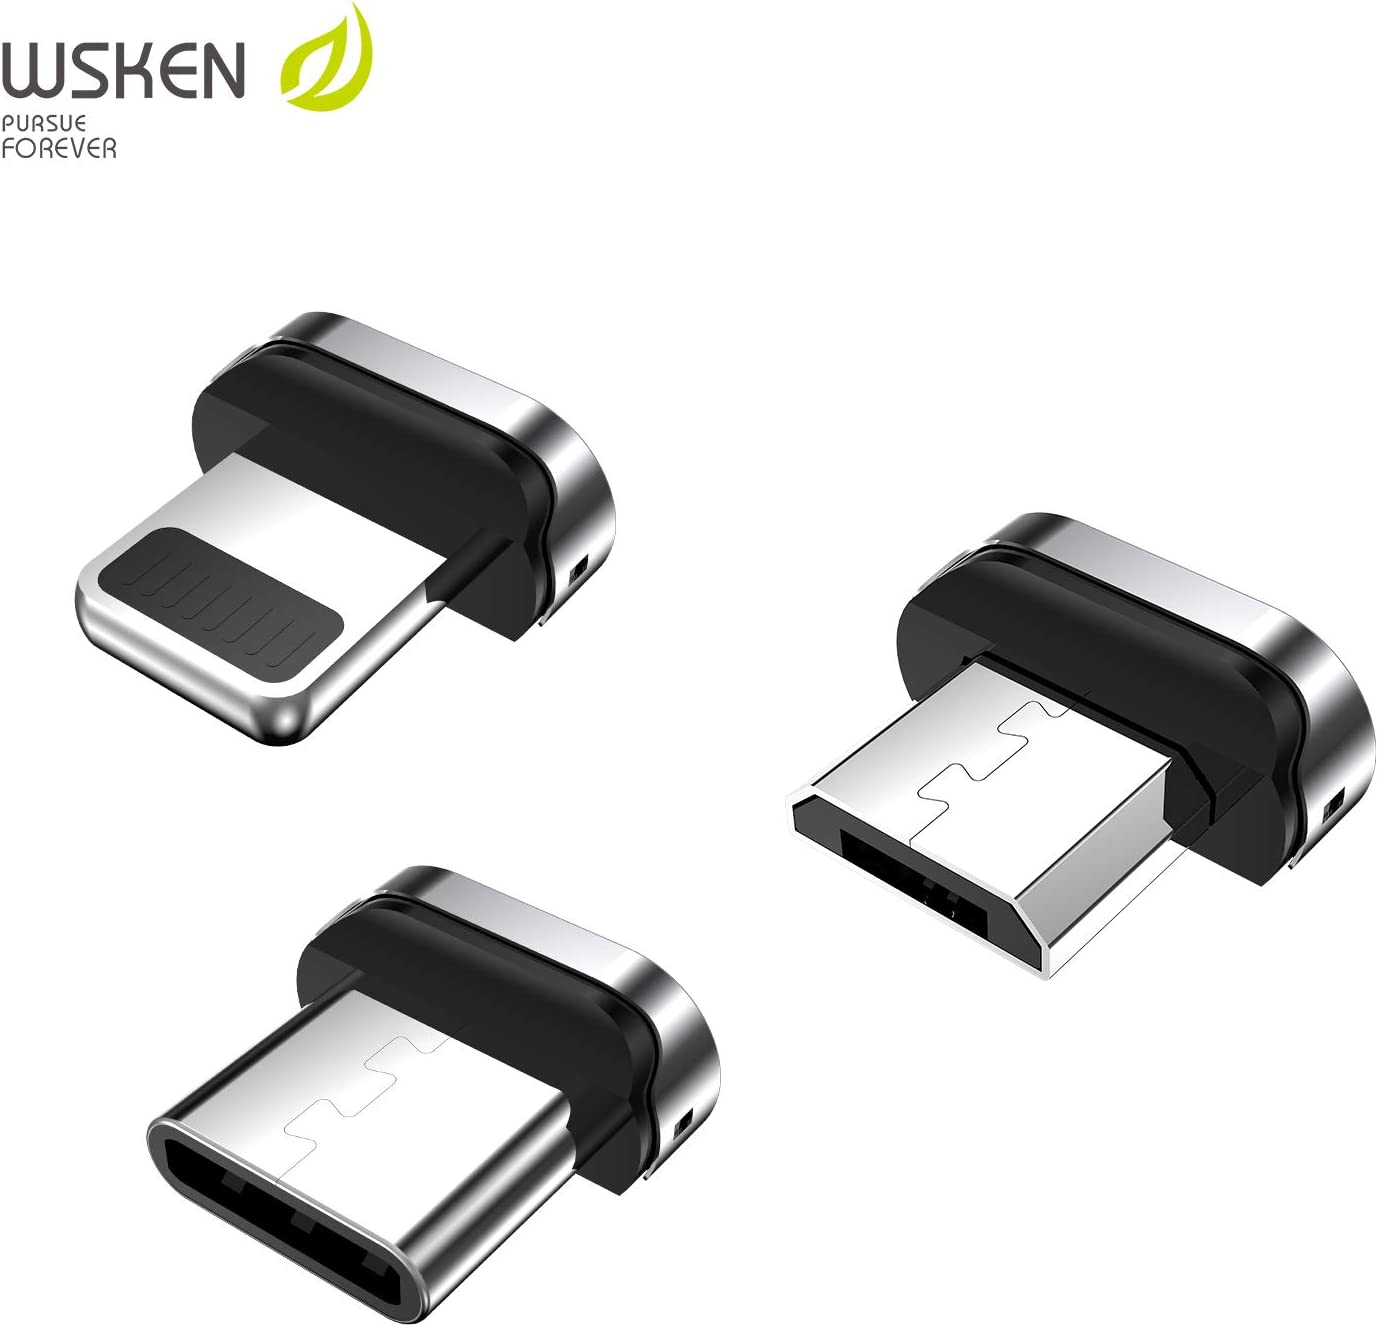 Handed Operation Inside the Card for Apple Iphone7 SE 6 6S Plus Ipad 3 4 Air 2 Ipod Lightning adapter Wsken Round Magnetic Charging Cable Magnet Connector Non Data Transfer Support One